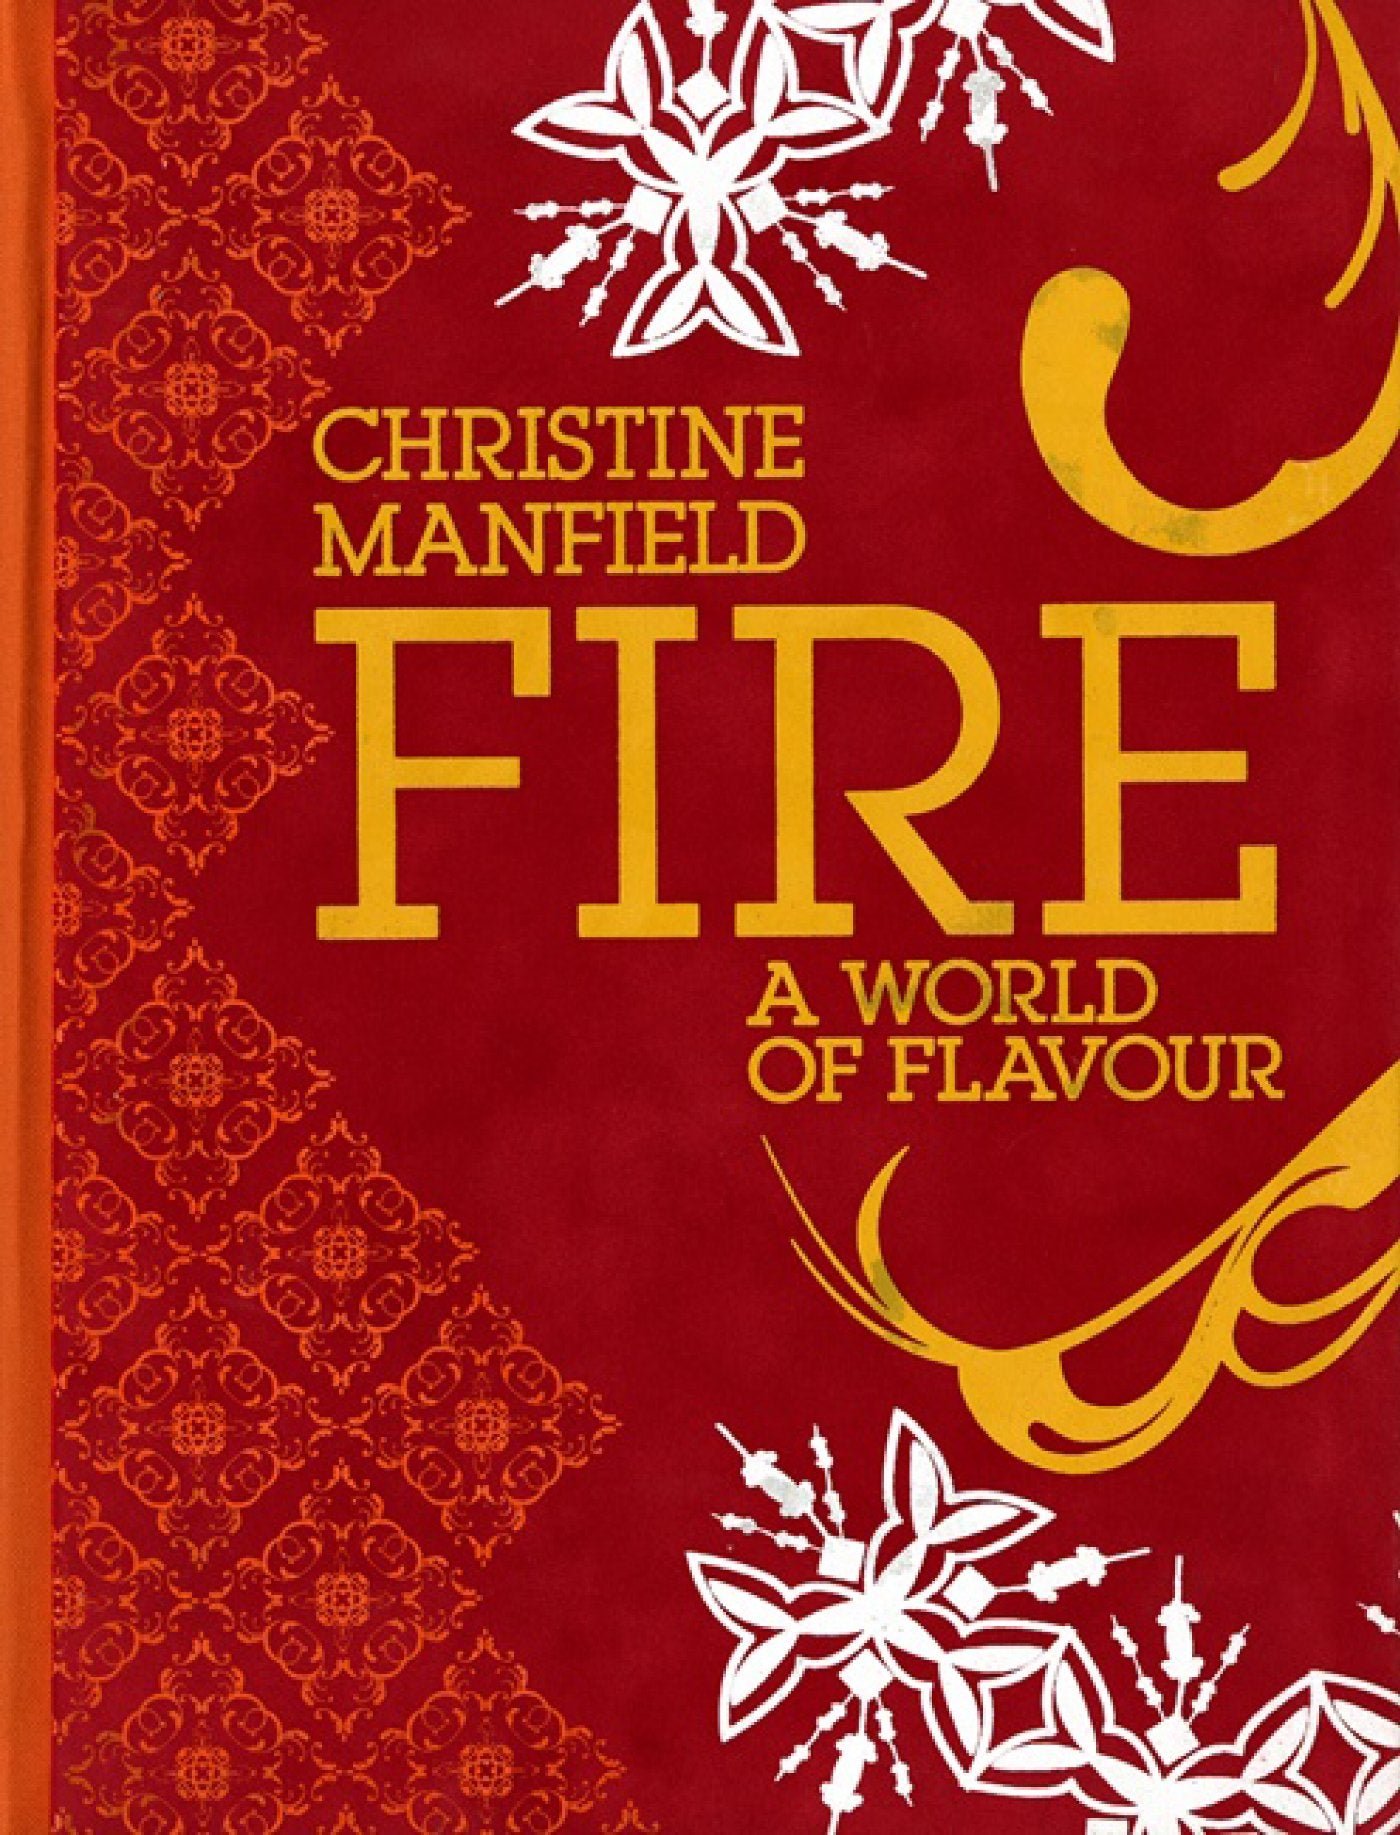 Fire: A World of Flavour by Christine Manfield